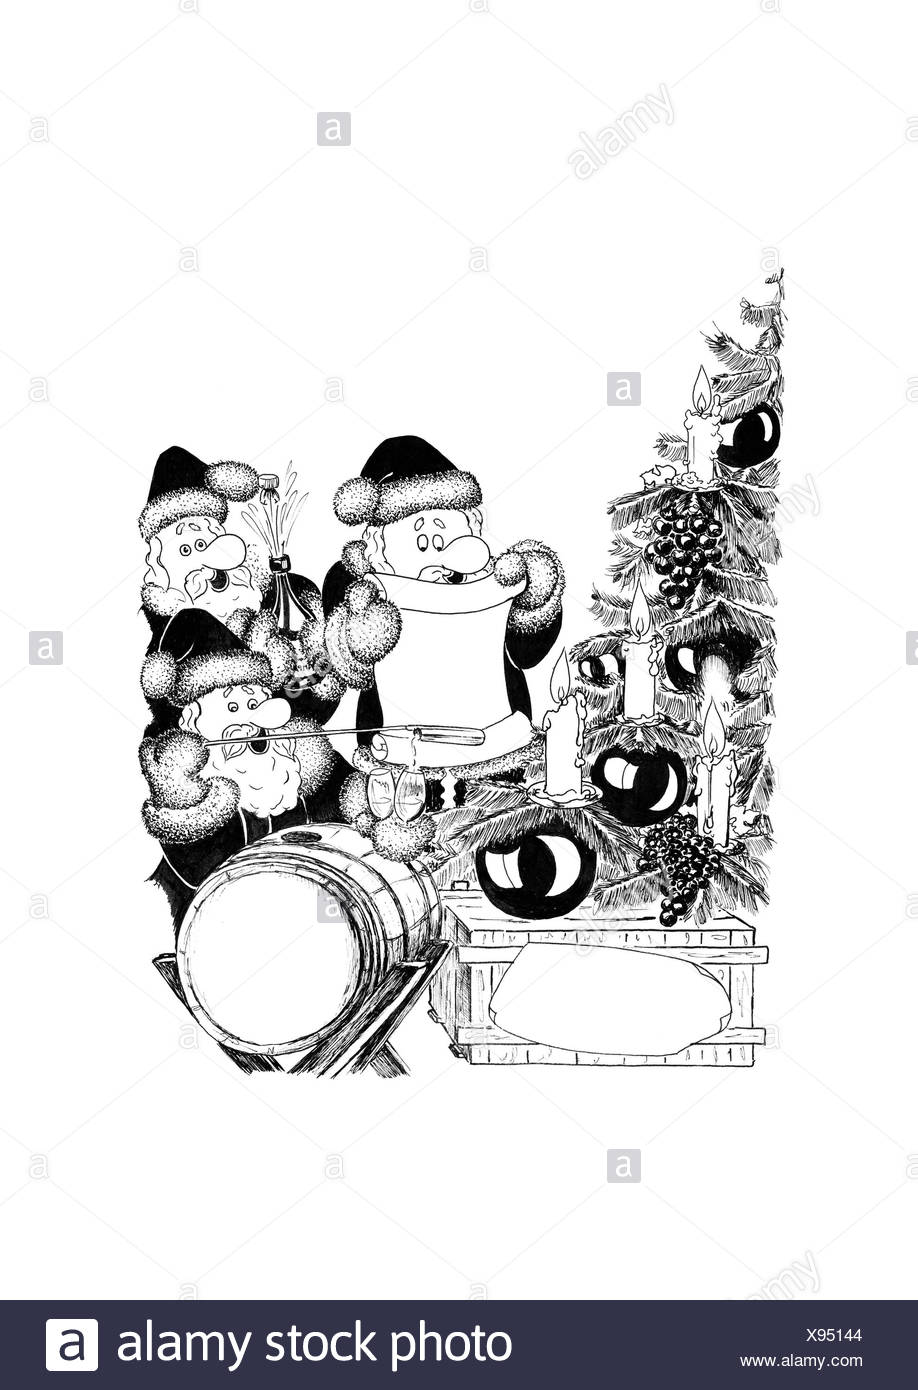 Singing Christmas Black and White Stock Photos & Images - Alamy